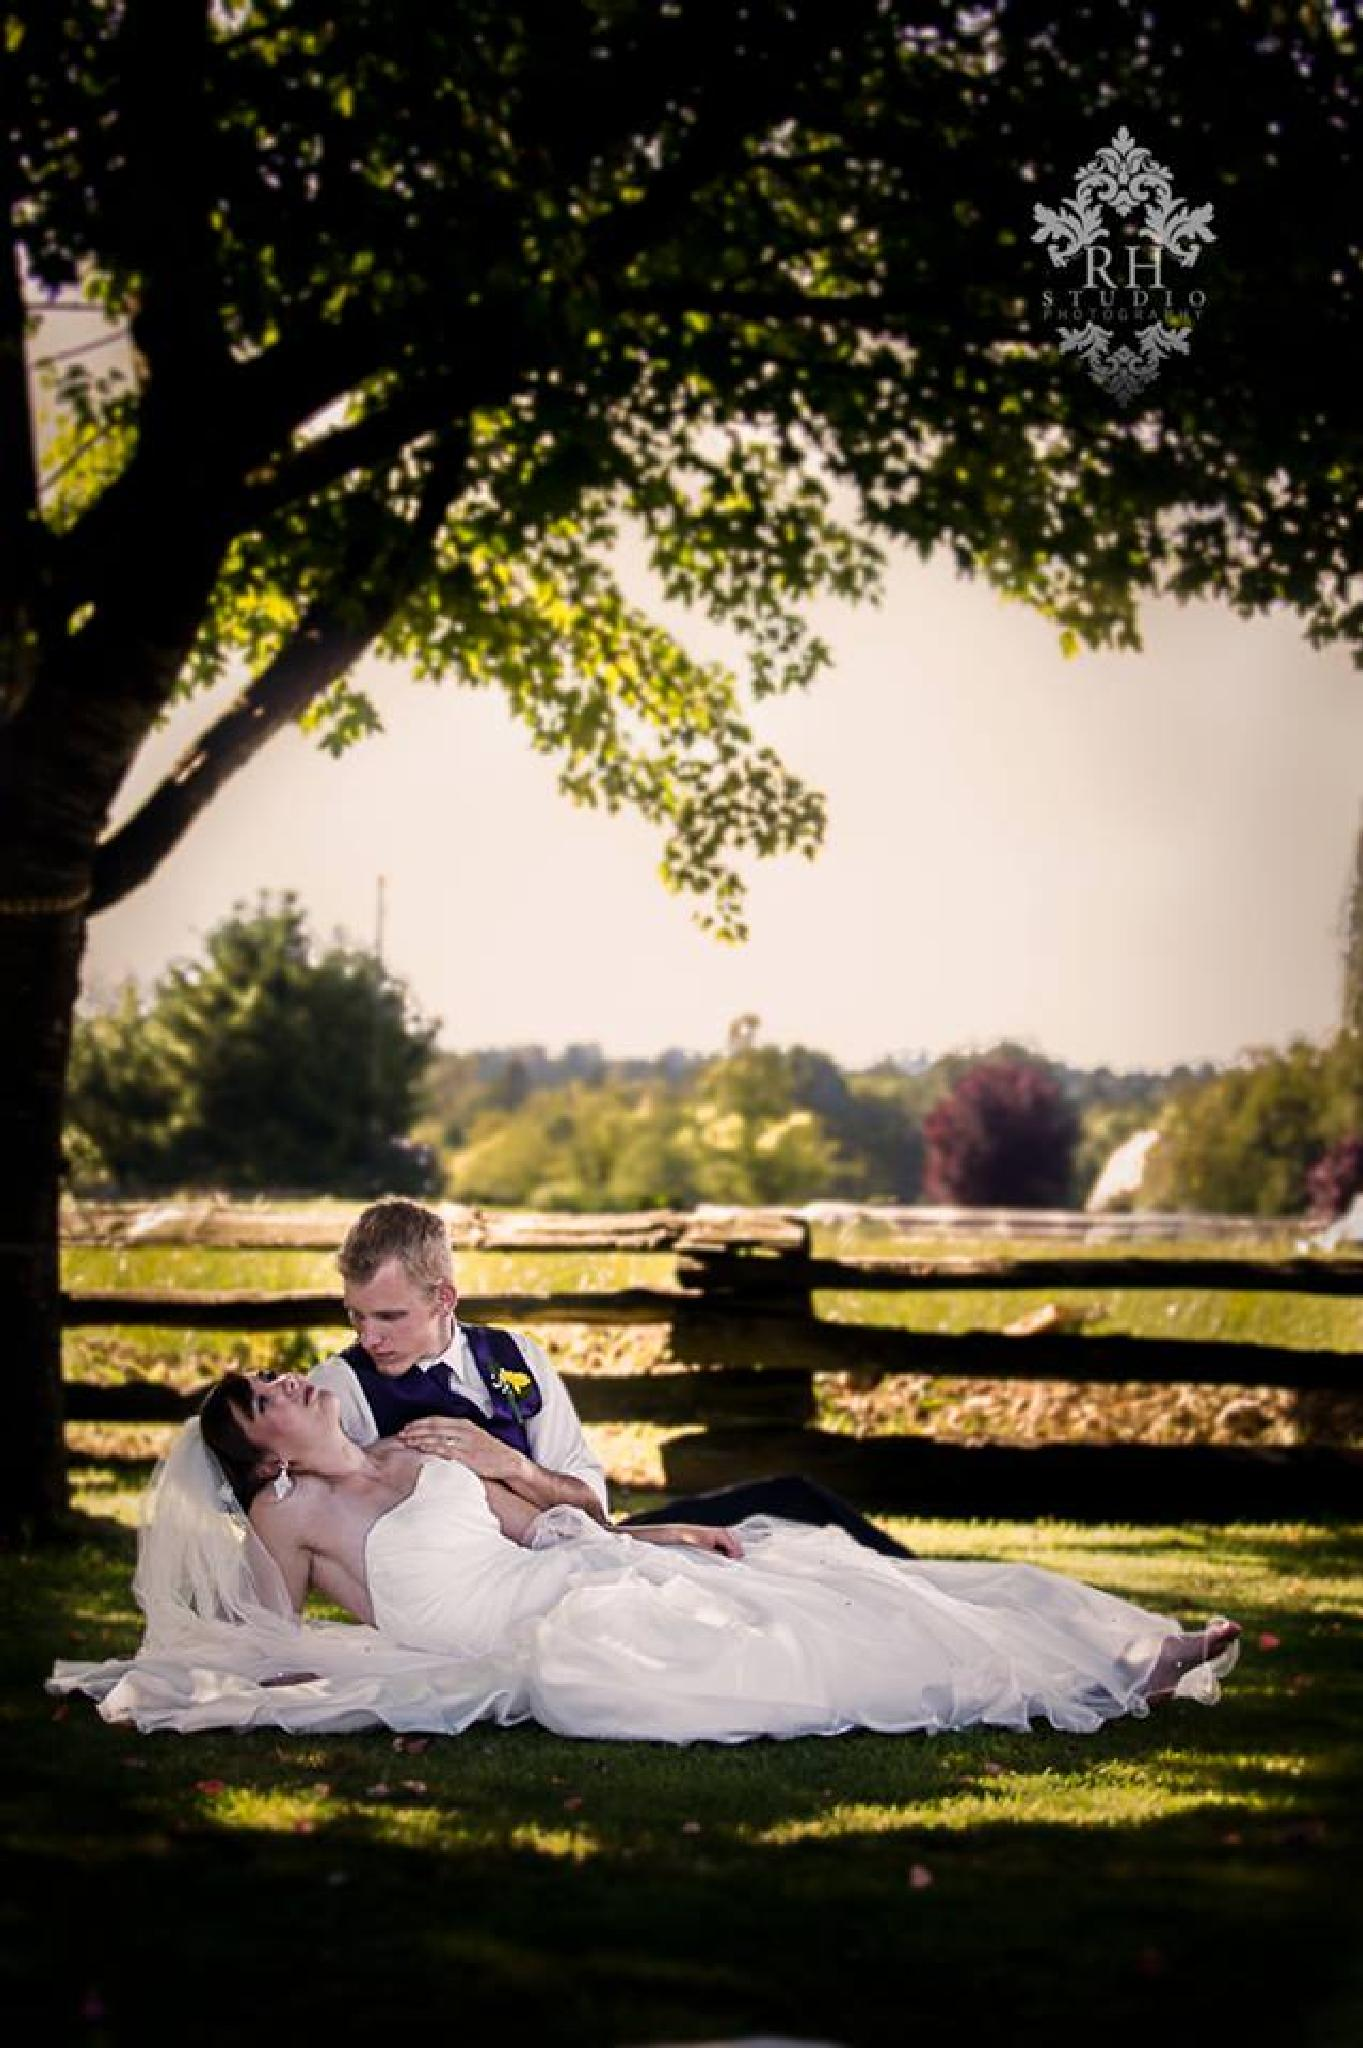 Wedding day along farm road by RH STudio Photography